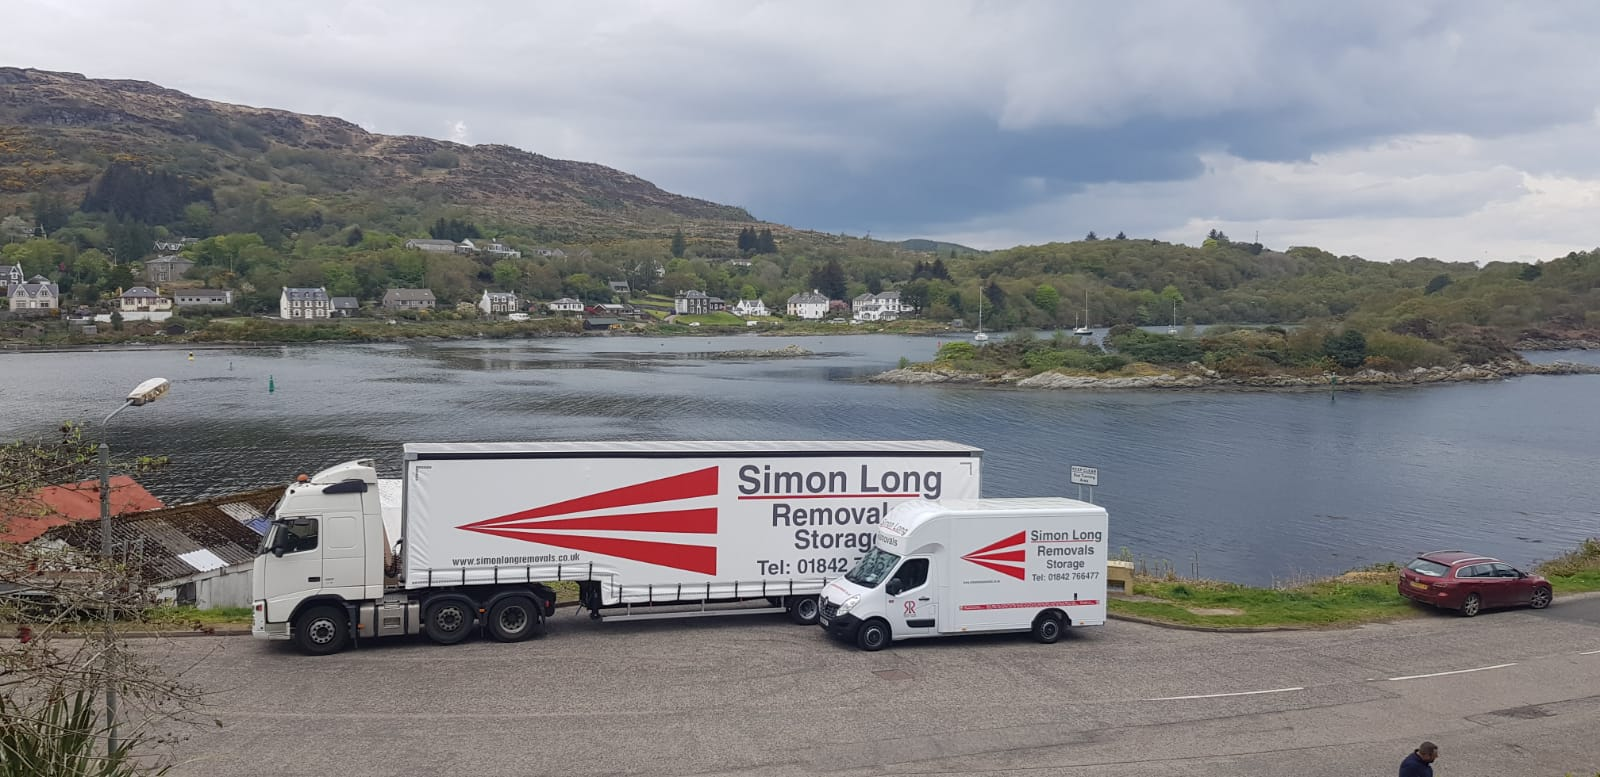 Simon Long Removals large lorry and removal van